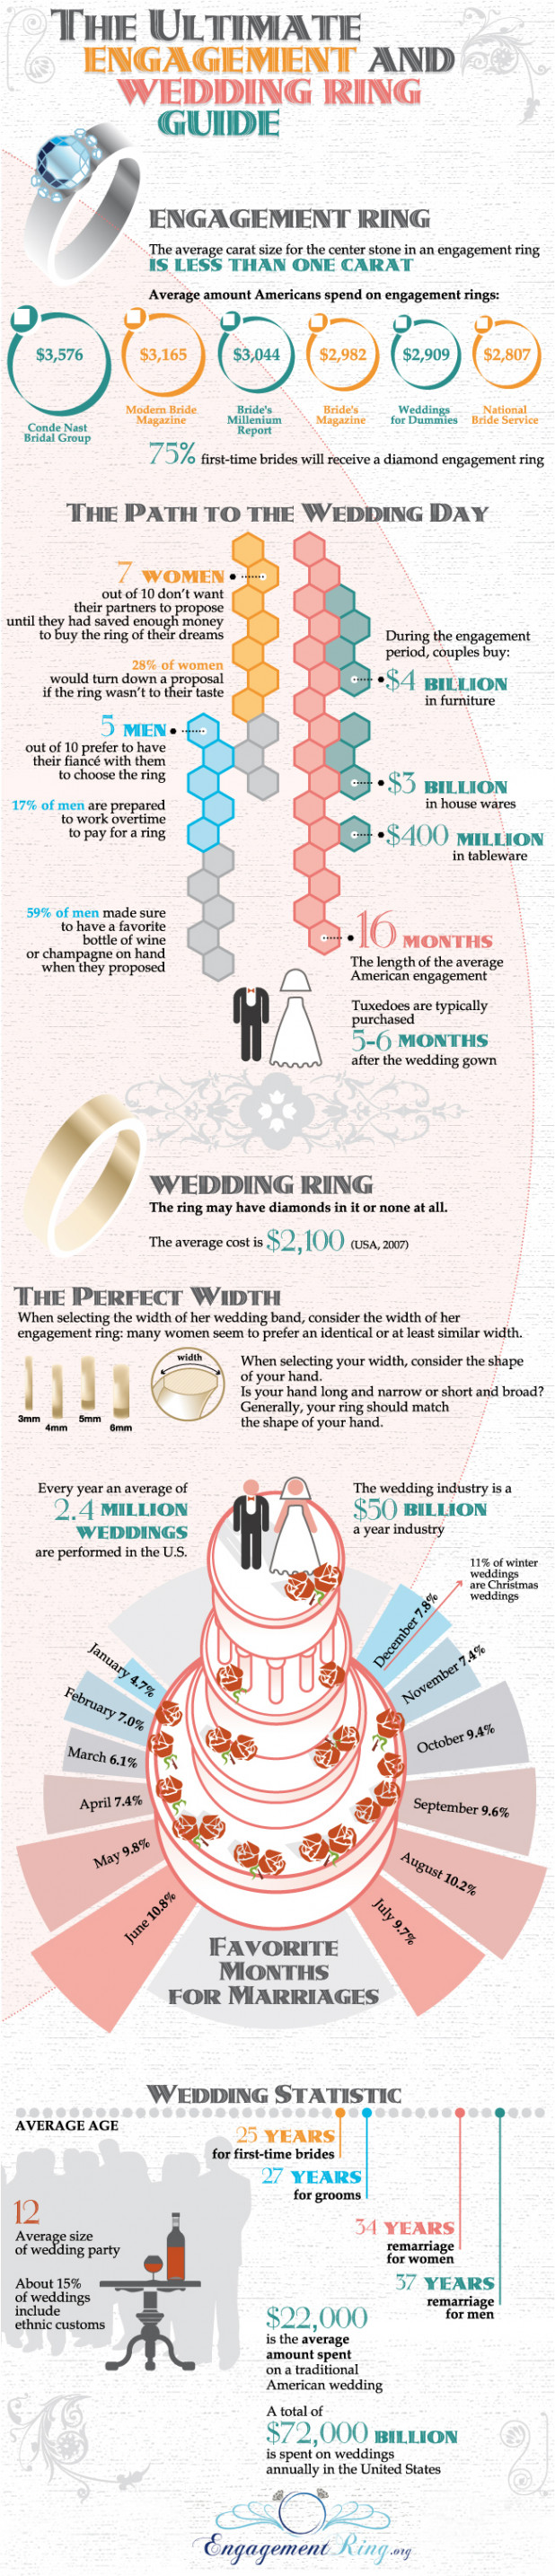 The Ultimate Engagement and Wedding Ring Guide